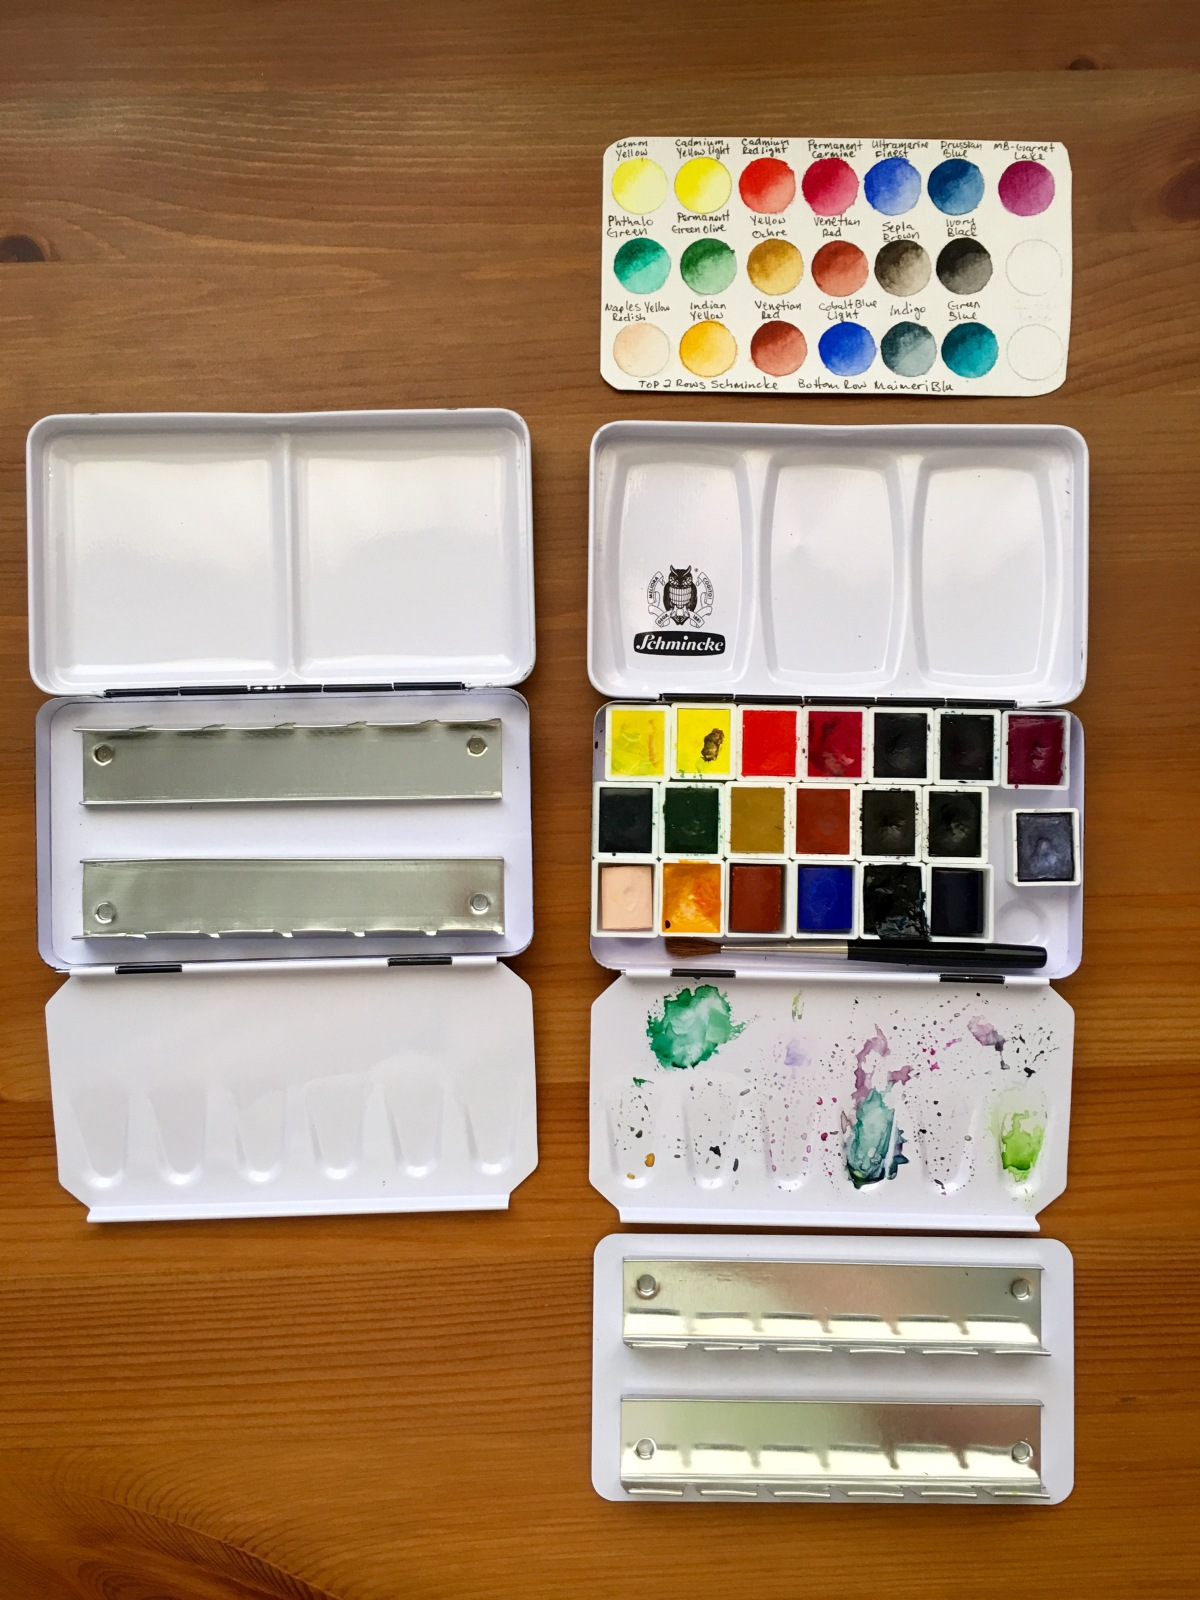 Inside of Schmincke and generic watercolor palettes, watercolor pans and watercolour paint swatch